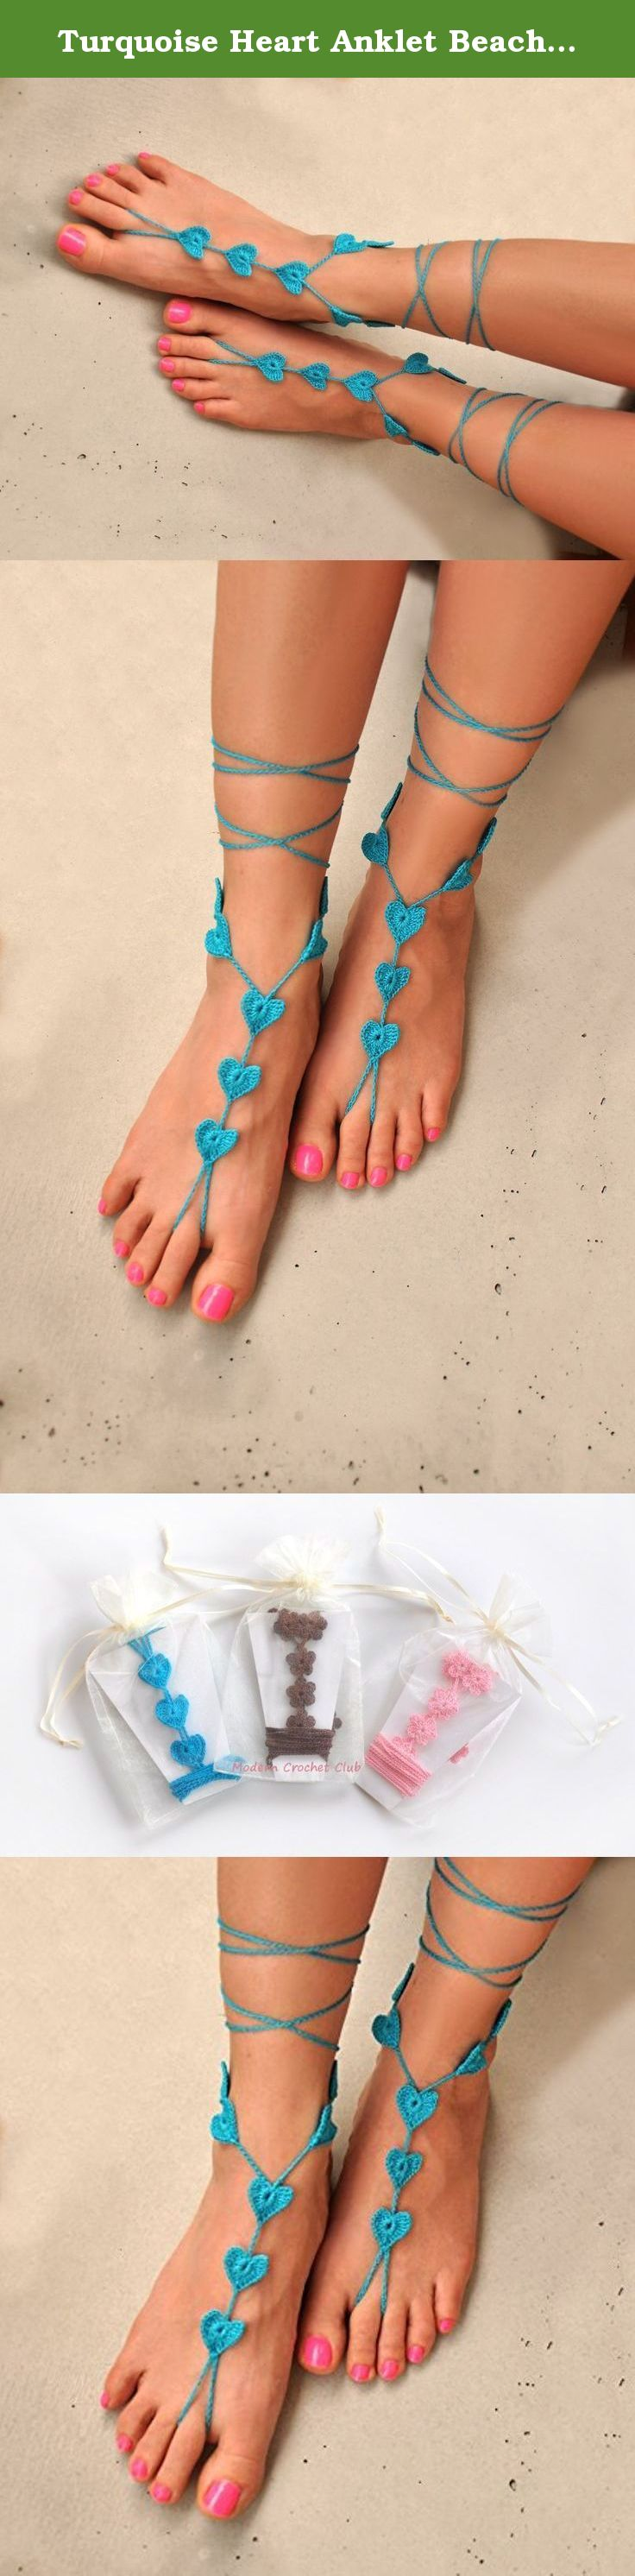 Turquoise Heart Anklet Beach wedding Barefoot Sandals, Something blue Foot Jewelry. Sexy heart barefoot sandals, so hot and so sophisticated. Hand made of very thin mercerized cotton and that is why they look so delicate on your feet and you don't even feel while you wear them. Strings ended with hearts too. Foot jewelry that you have to have for your beach wedding, holidays, beach party, garden party, joga classes and everywhere you go bare foot. Perfect for your outdoor wedding. Crochet...